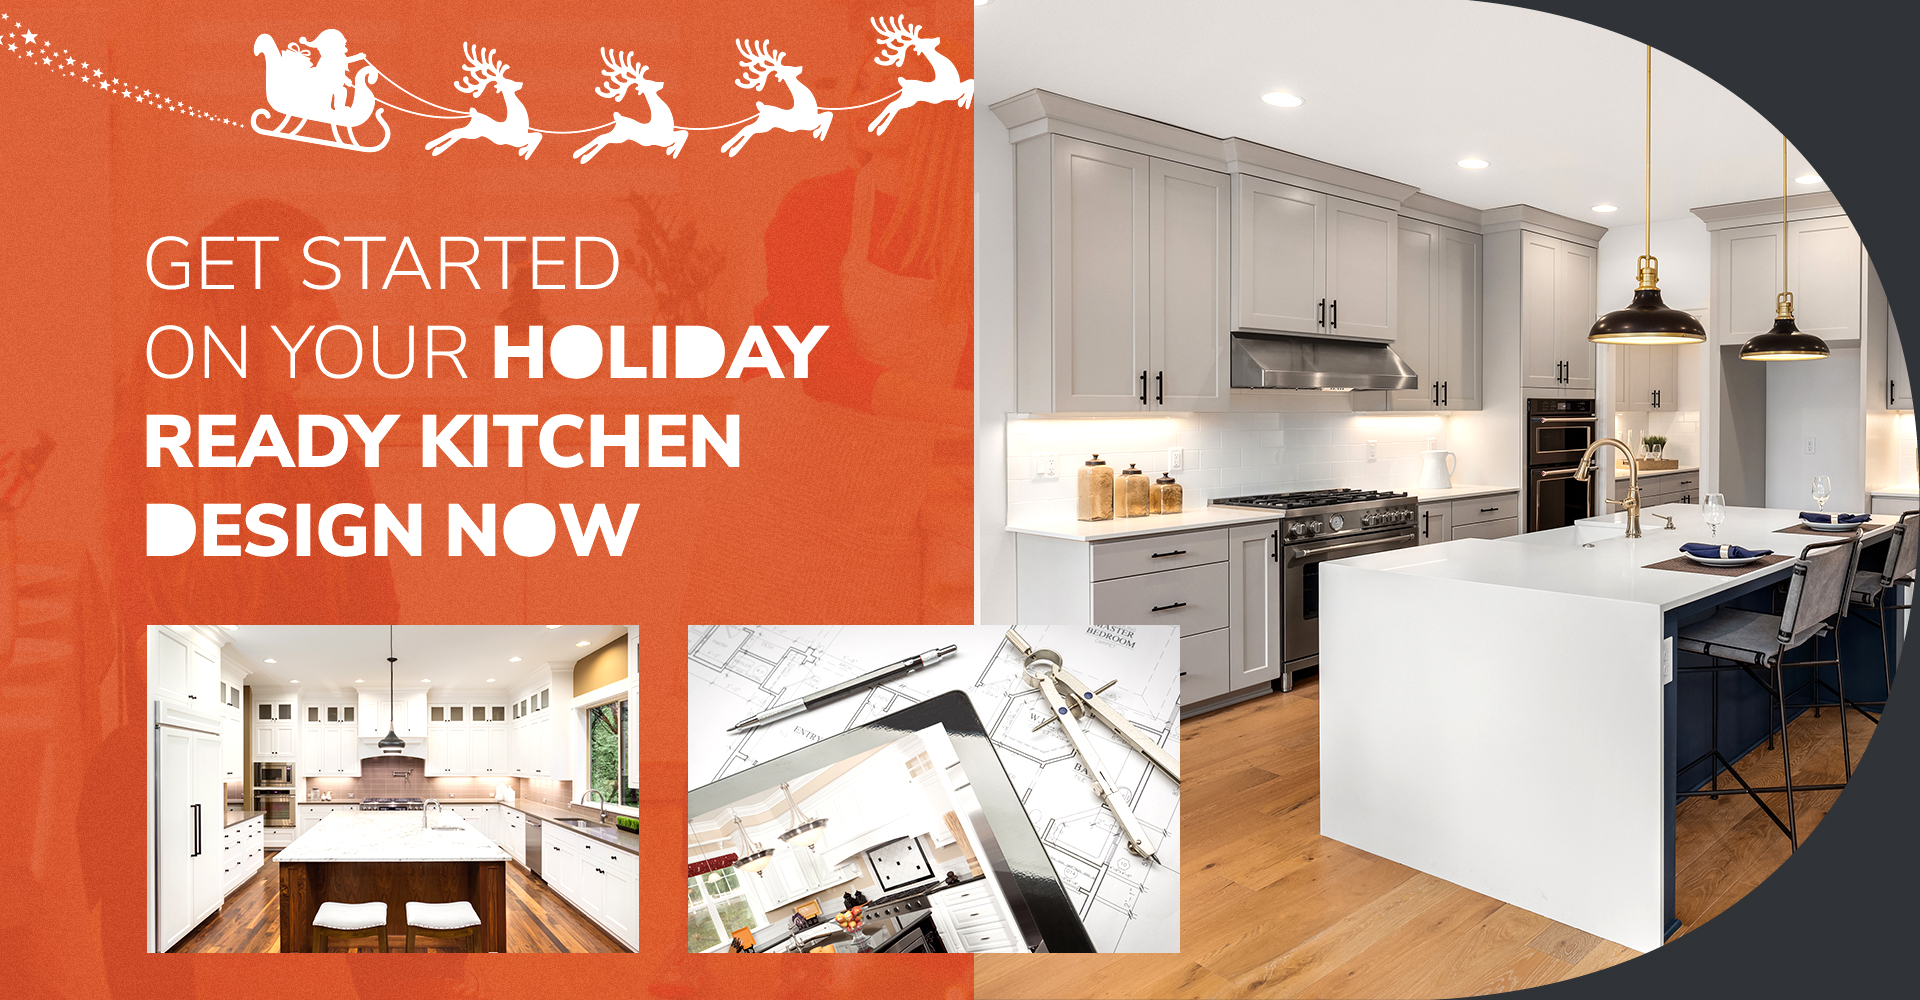 Get Started on Your Holiday Ready Kitchen Design Now